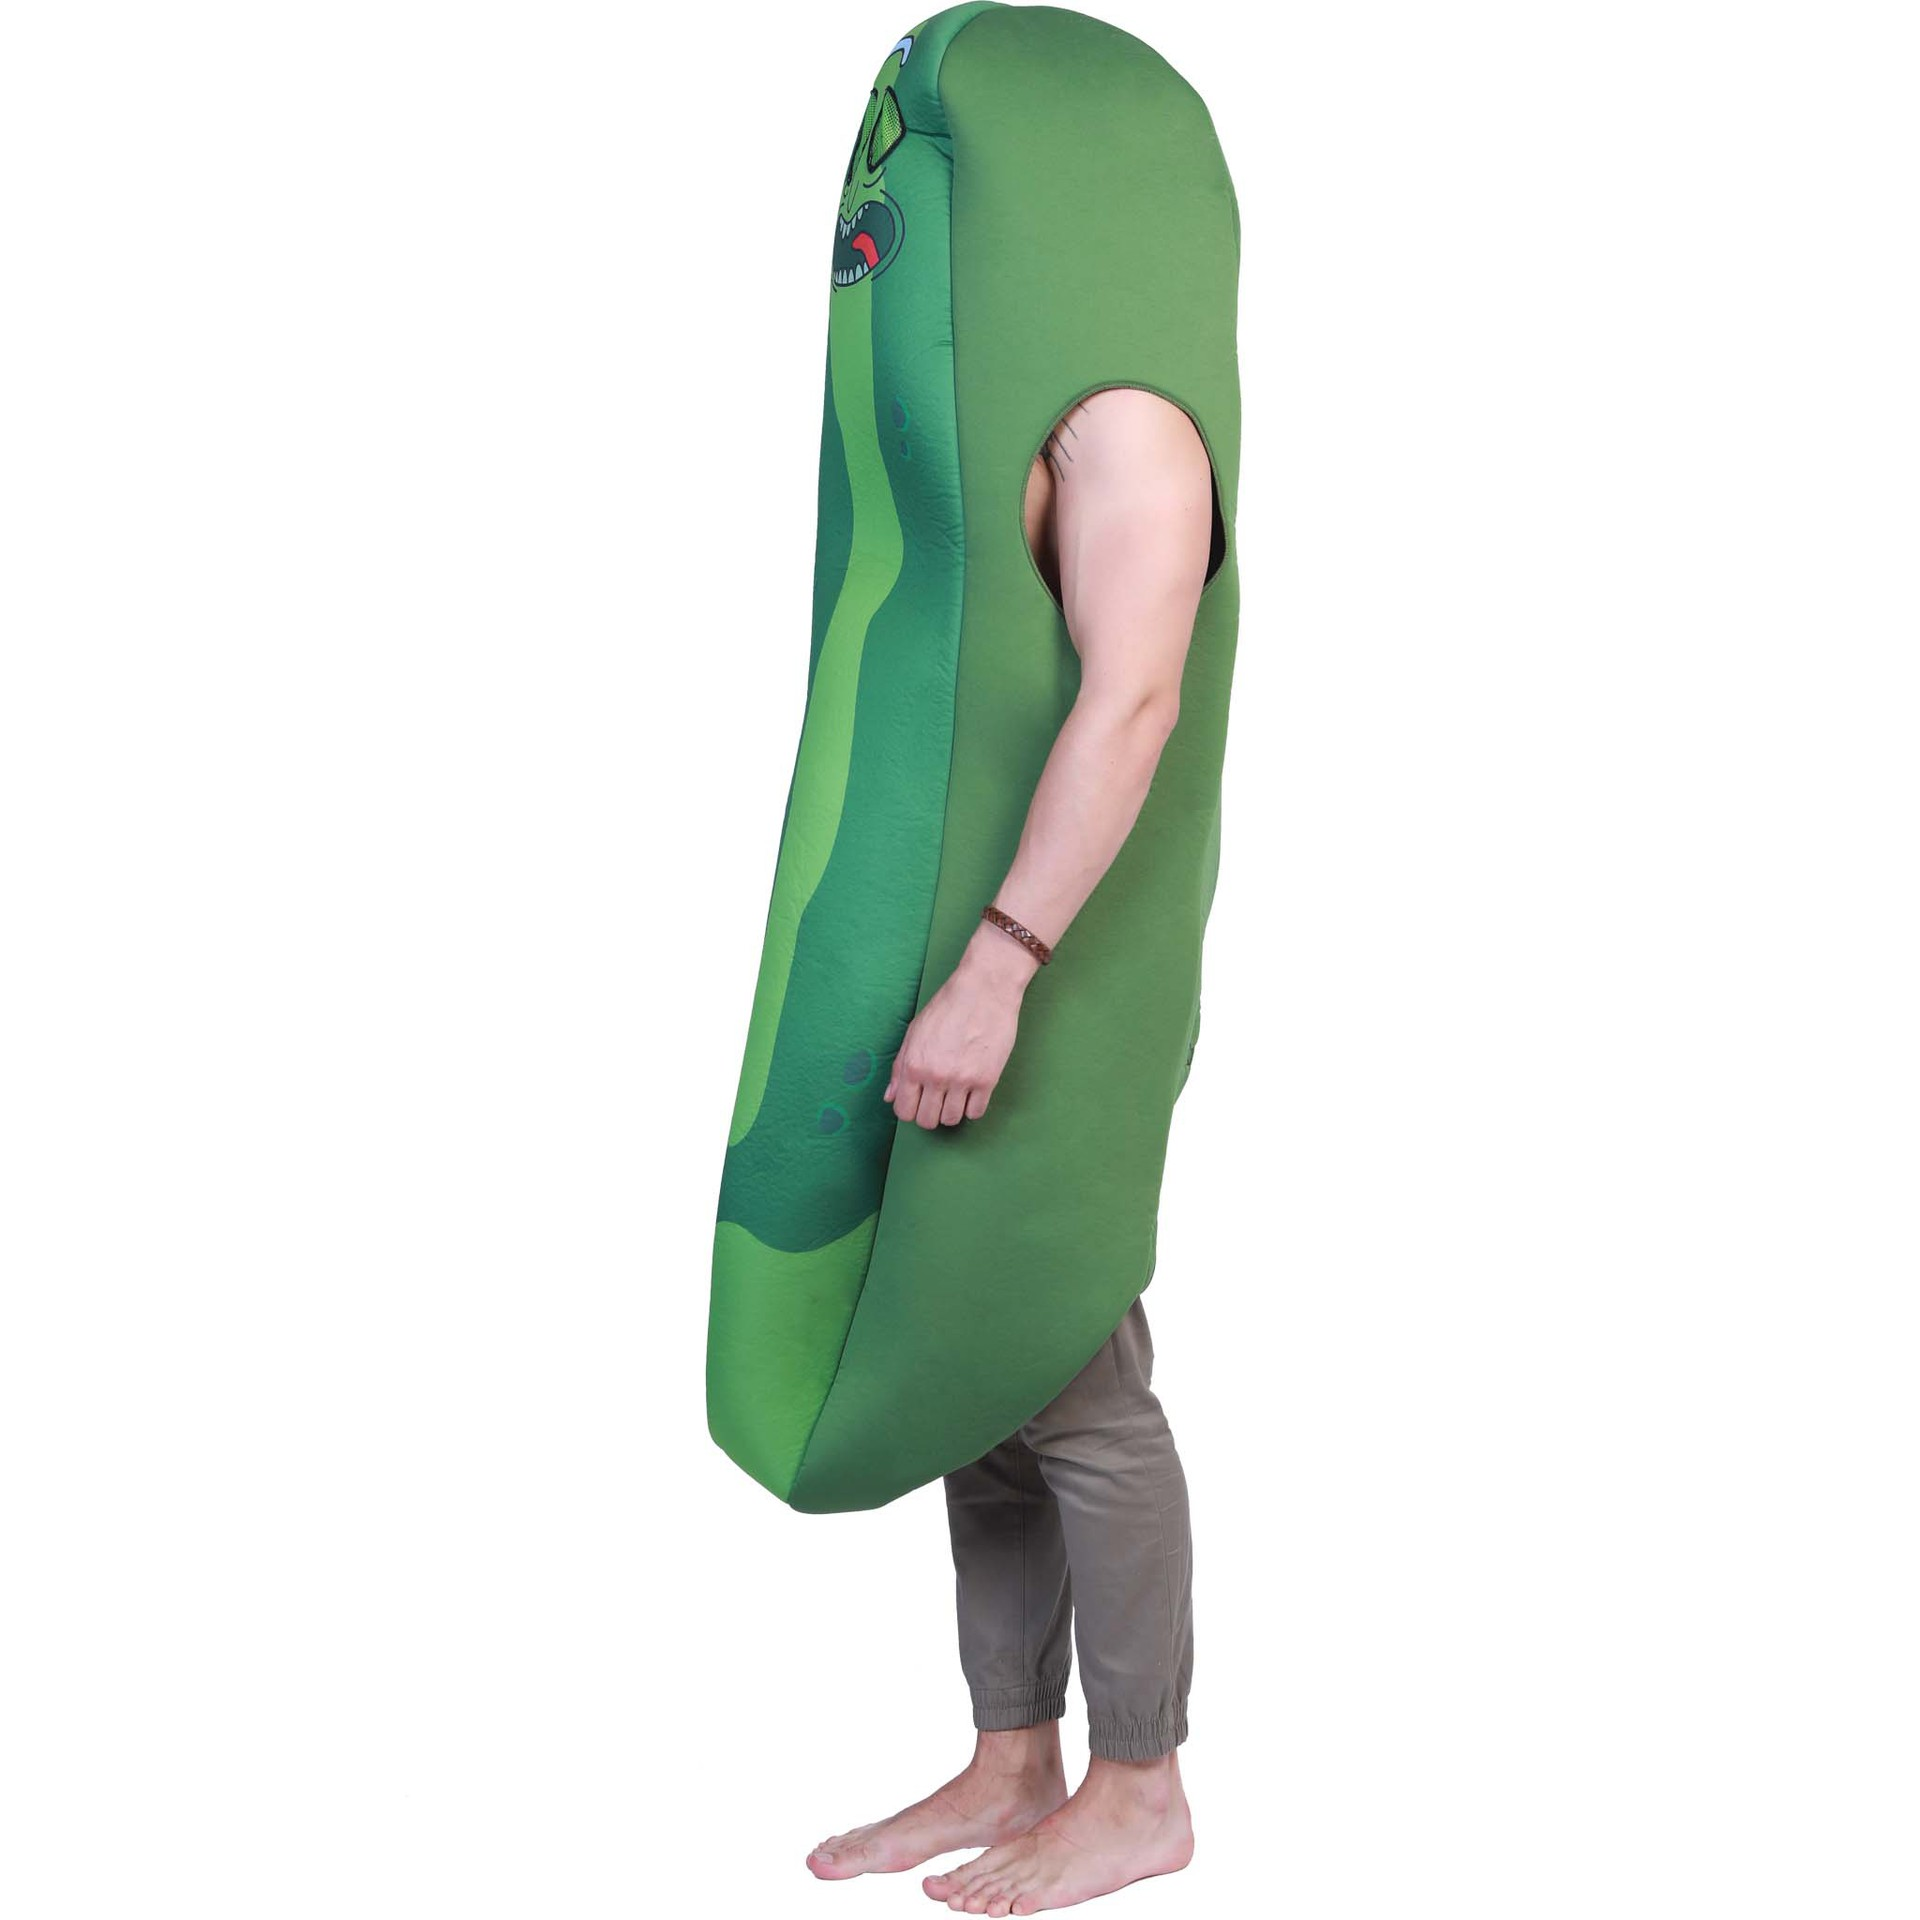 Halloween Costumes For Men Adult Rick And Morty Pickle Rick Foam Men`s Costume Green Cucumber Cosplay Food Cartoon Costume